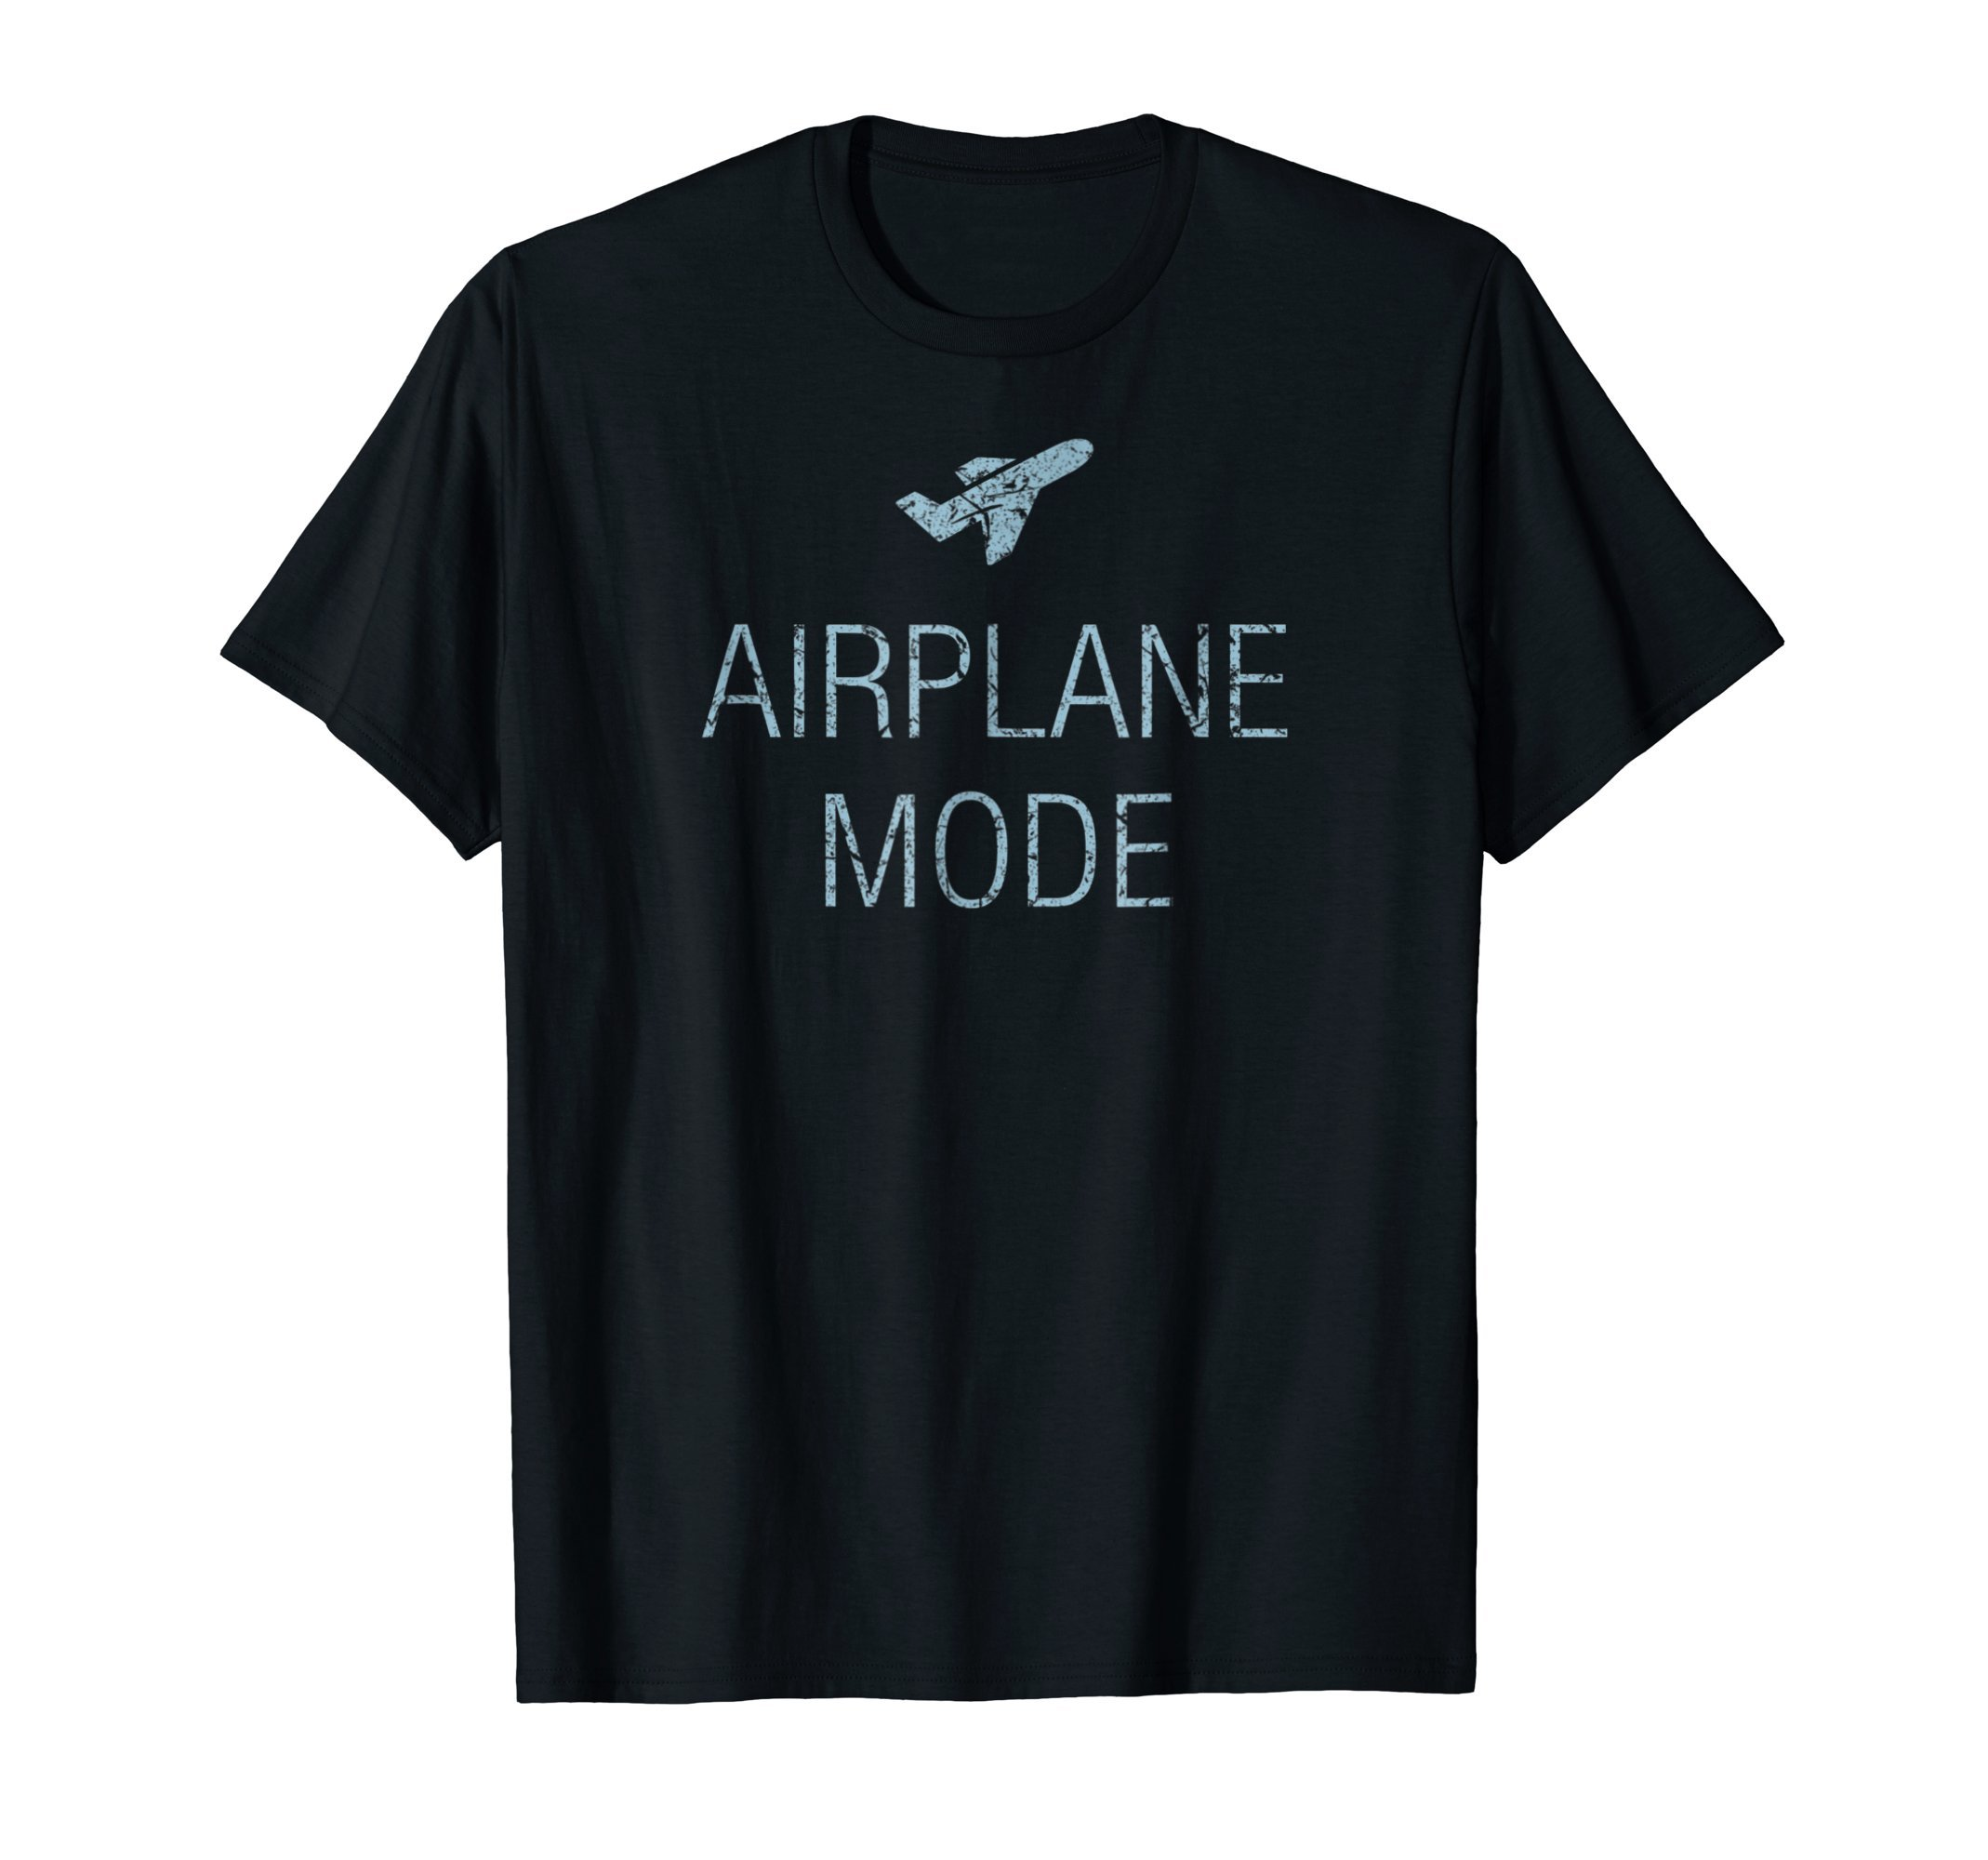 Awesome Airplane Mode T-Shirt. Travel Around the World Tee by Awesome Travel Adventure Apparel (Image #1)